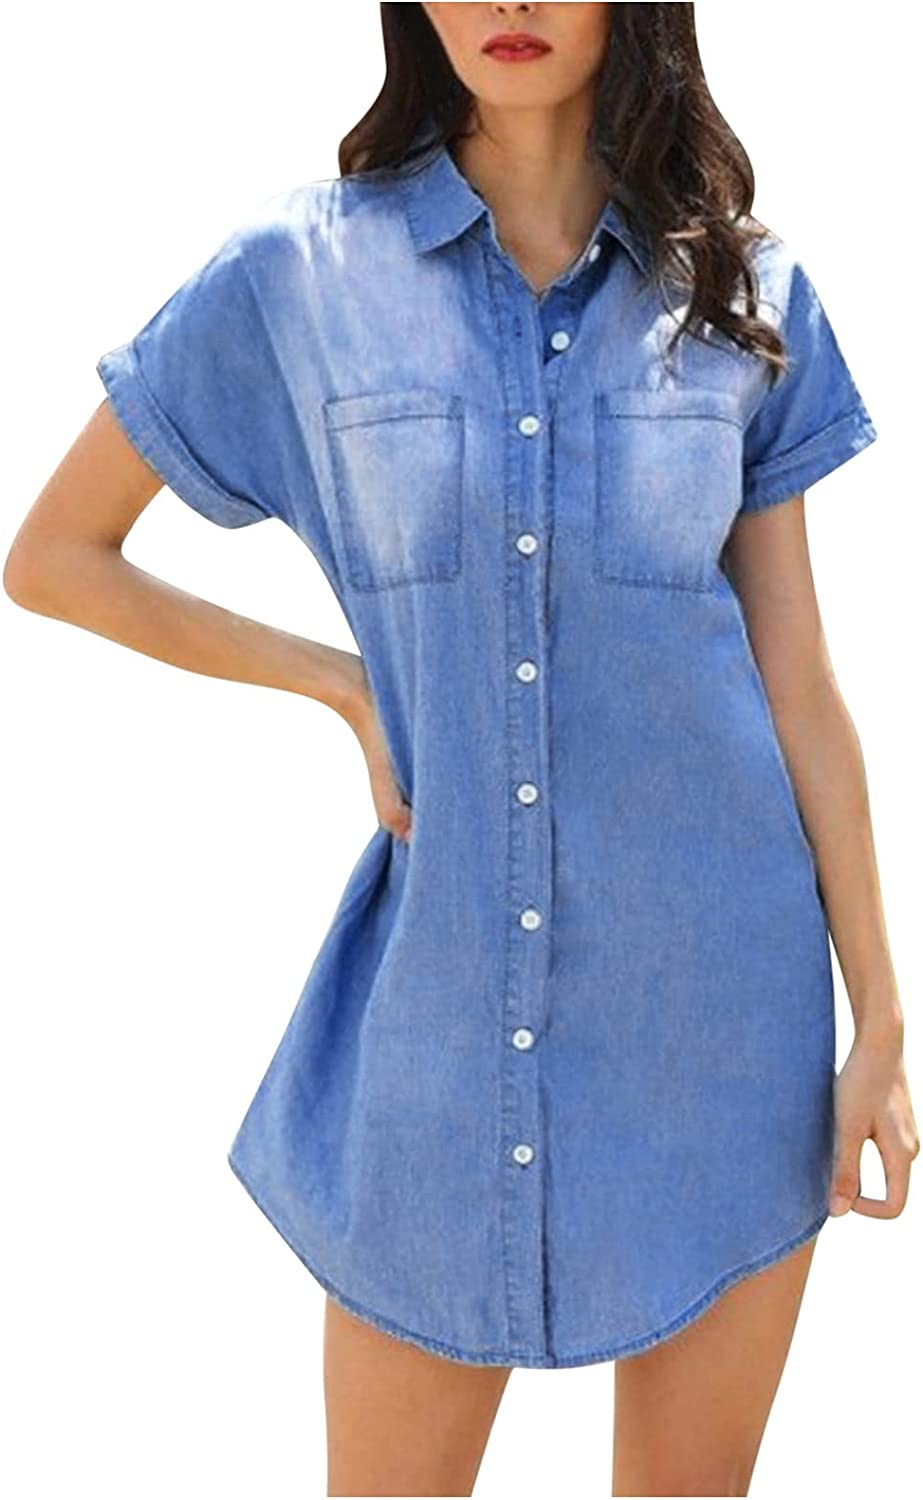 Euone_Clothes Blouses for Women Plus Size, Ladies Short Sleeve Lapel Solid Color Denim Shirt Single Breasted Ladies Shirt